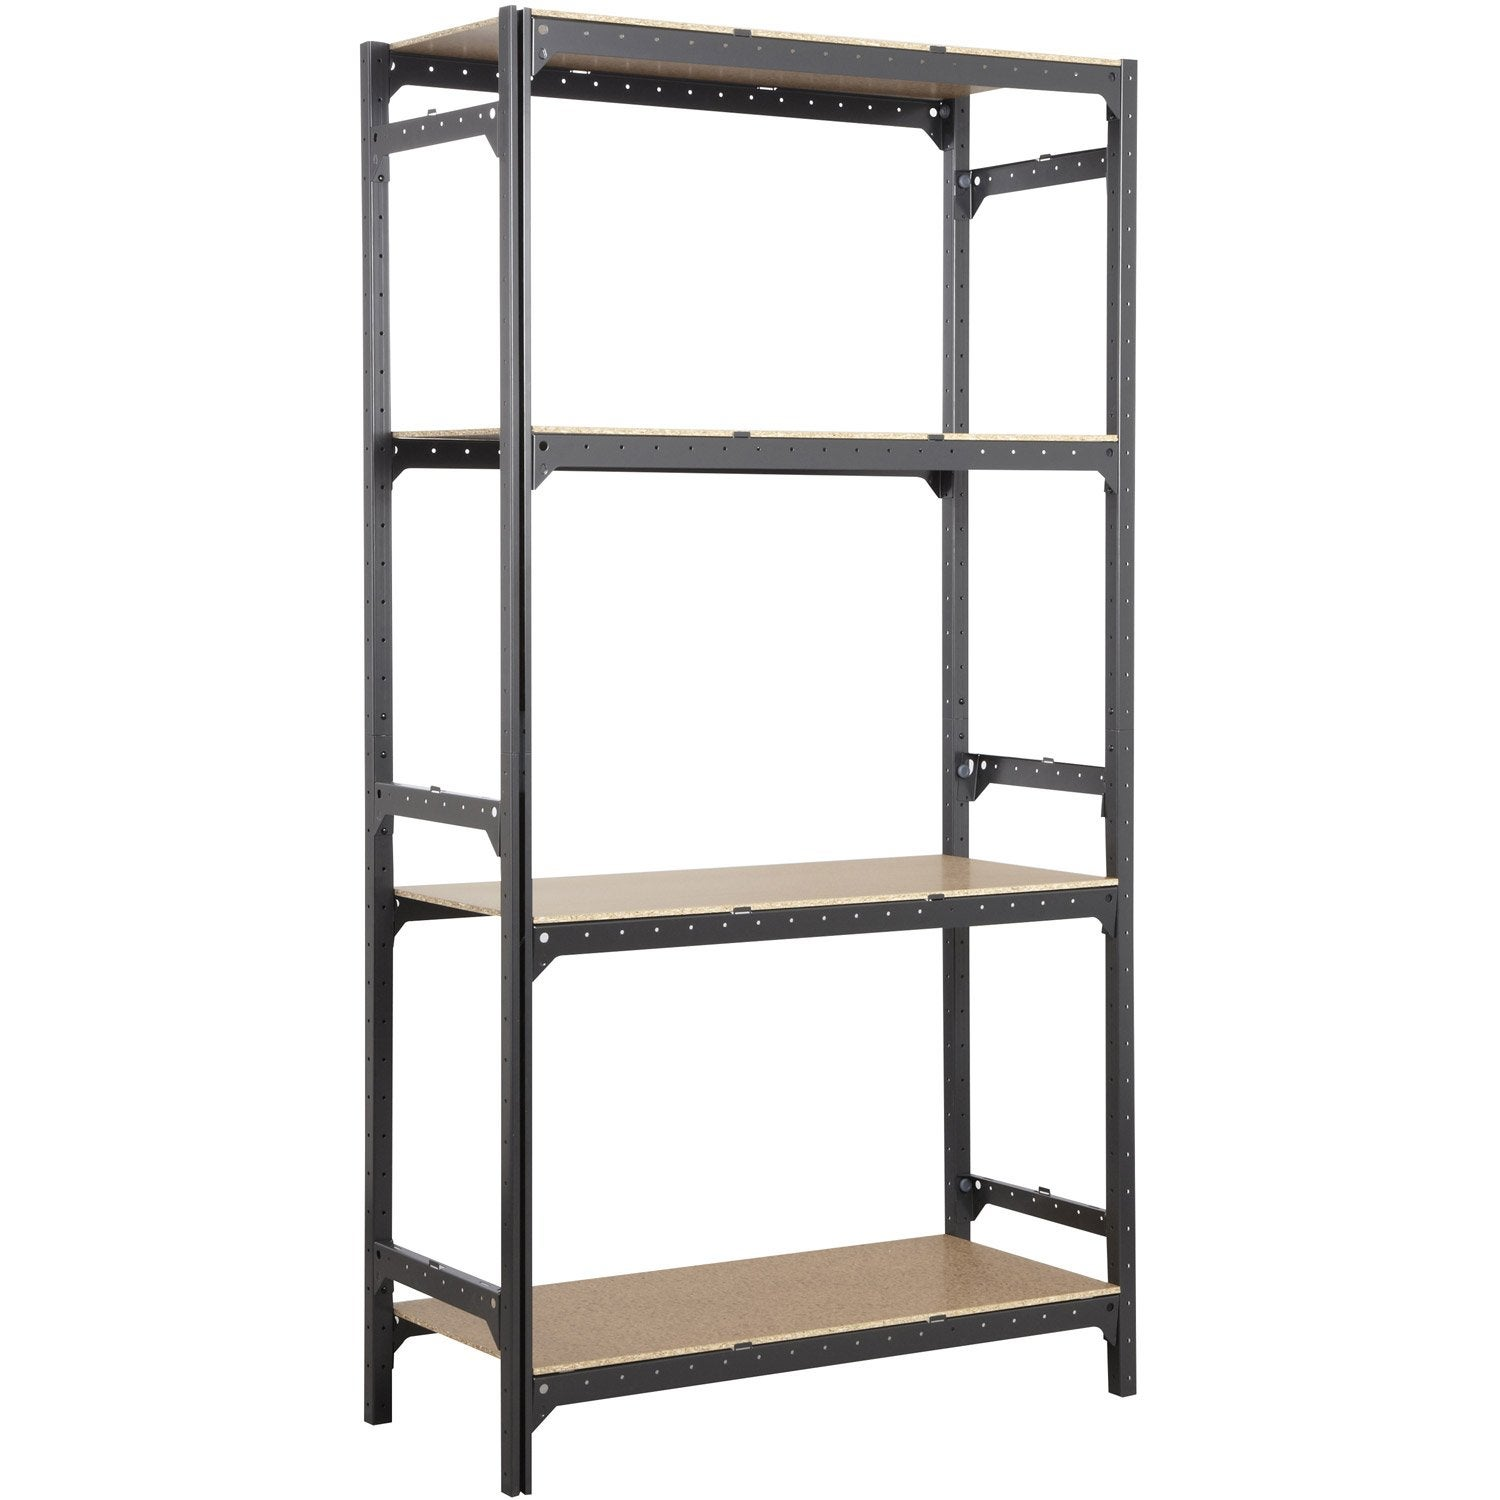 Etag re acier spaceo hubsystem 4 tablettes gris charbon for Leroy merlin etagere salle de bain